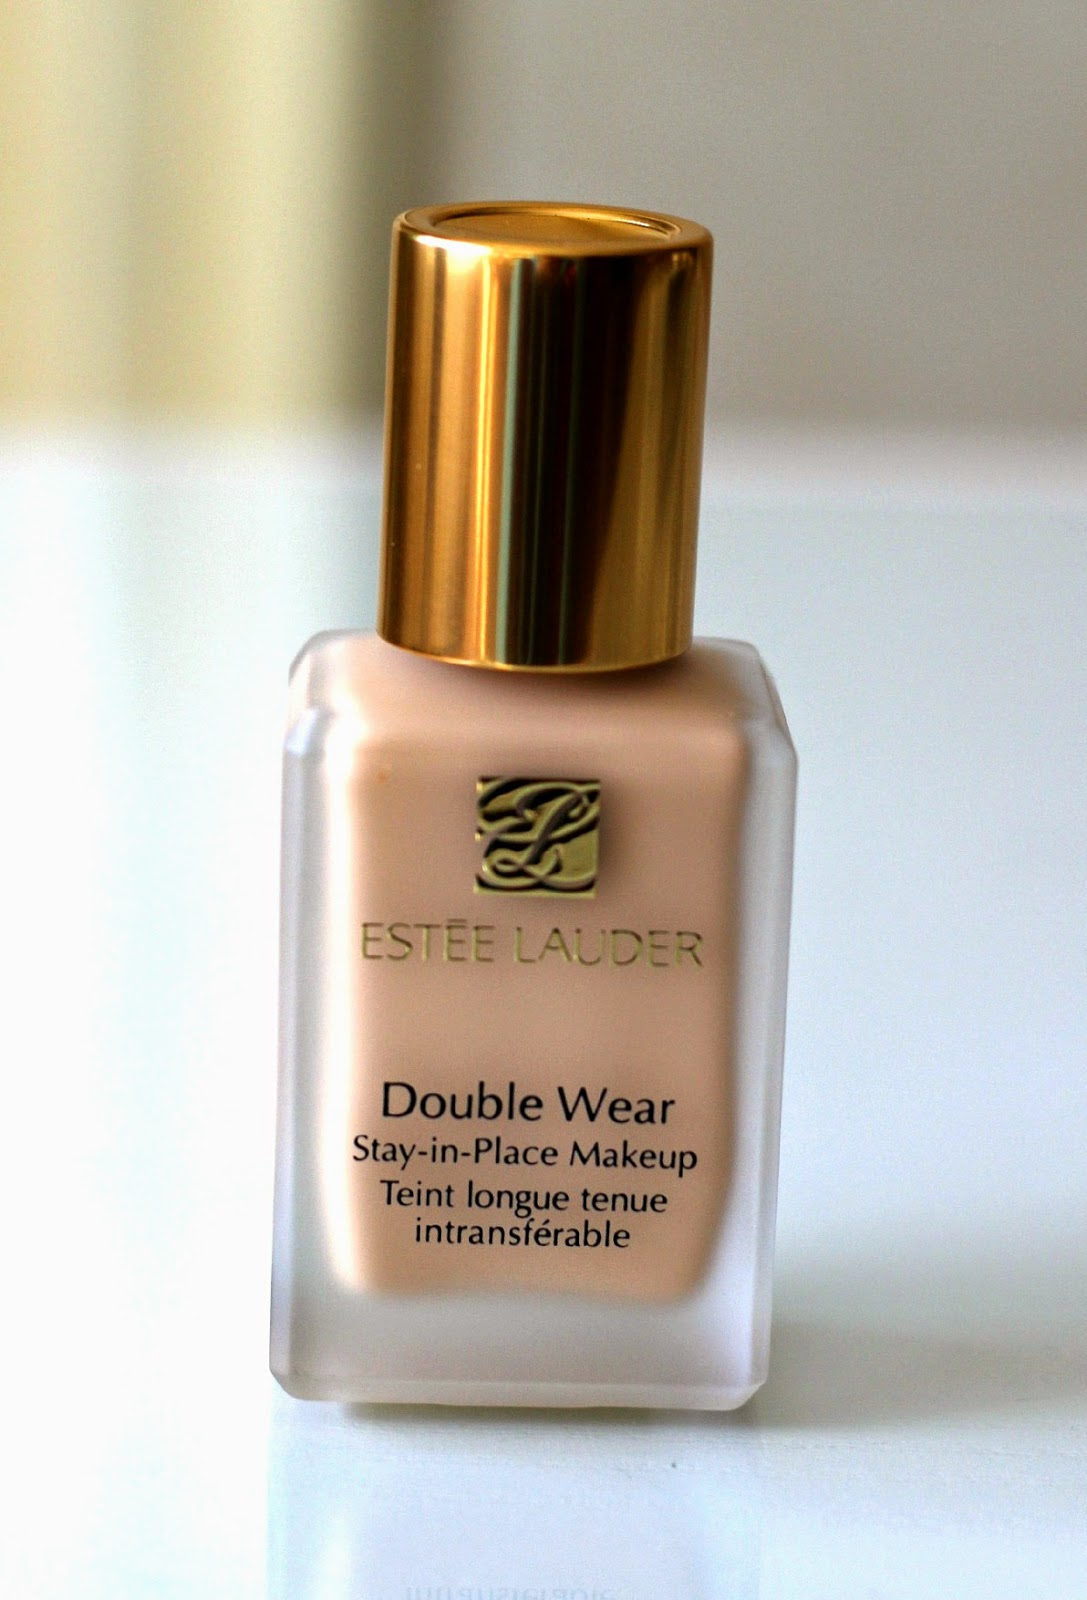 Est Lauder Double Wear Stay Place Makeup Foundation